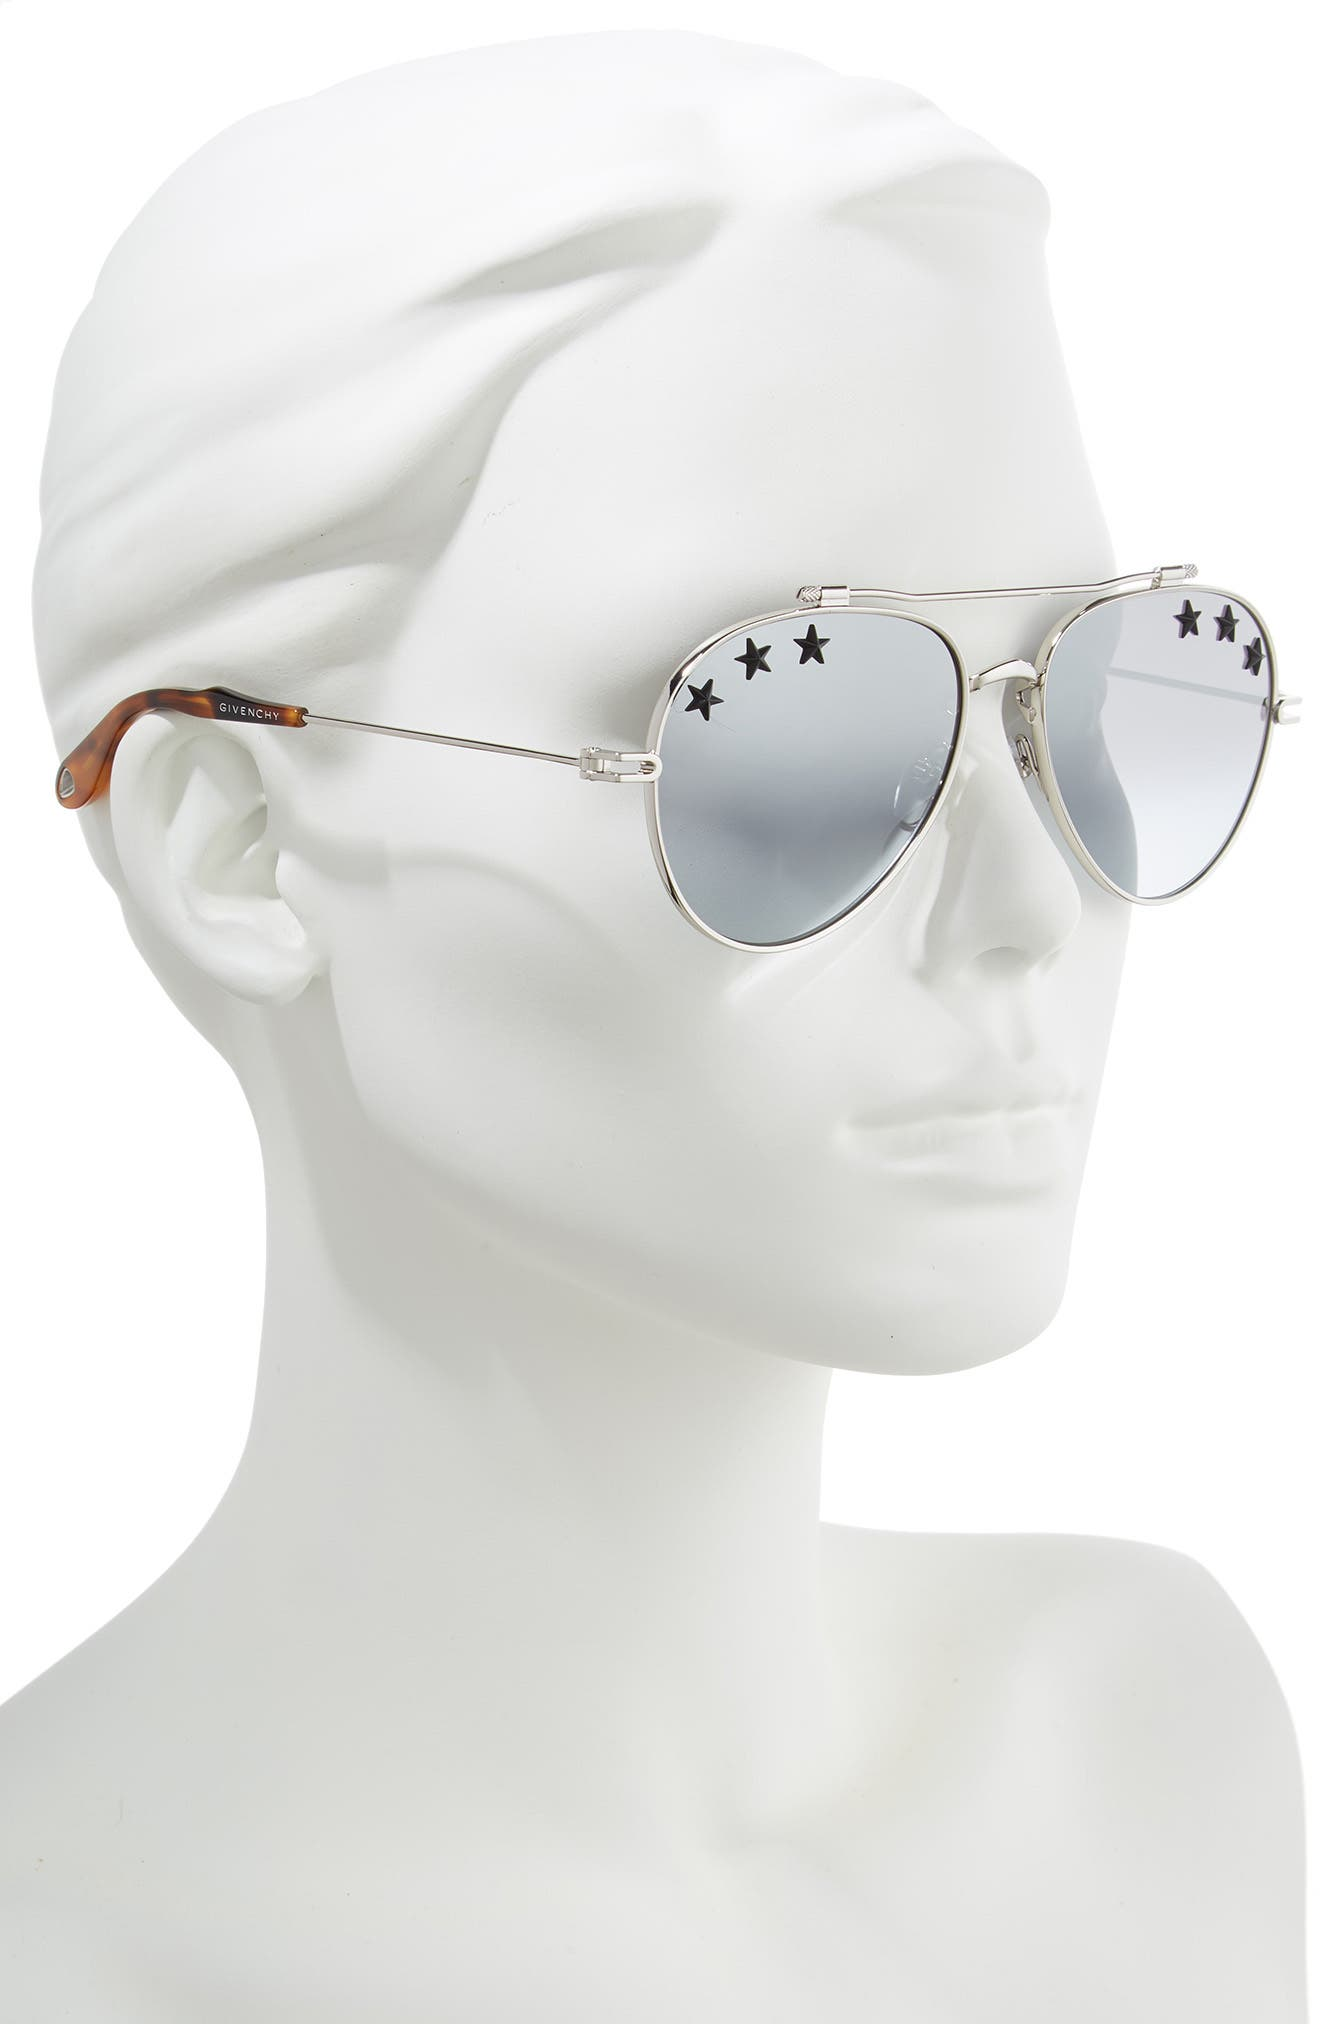 df90846c5b Givenchy Women s Sunglasses Sunglasses and Accessories